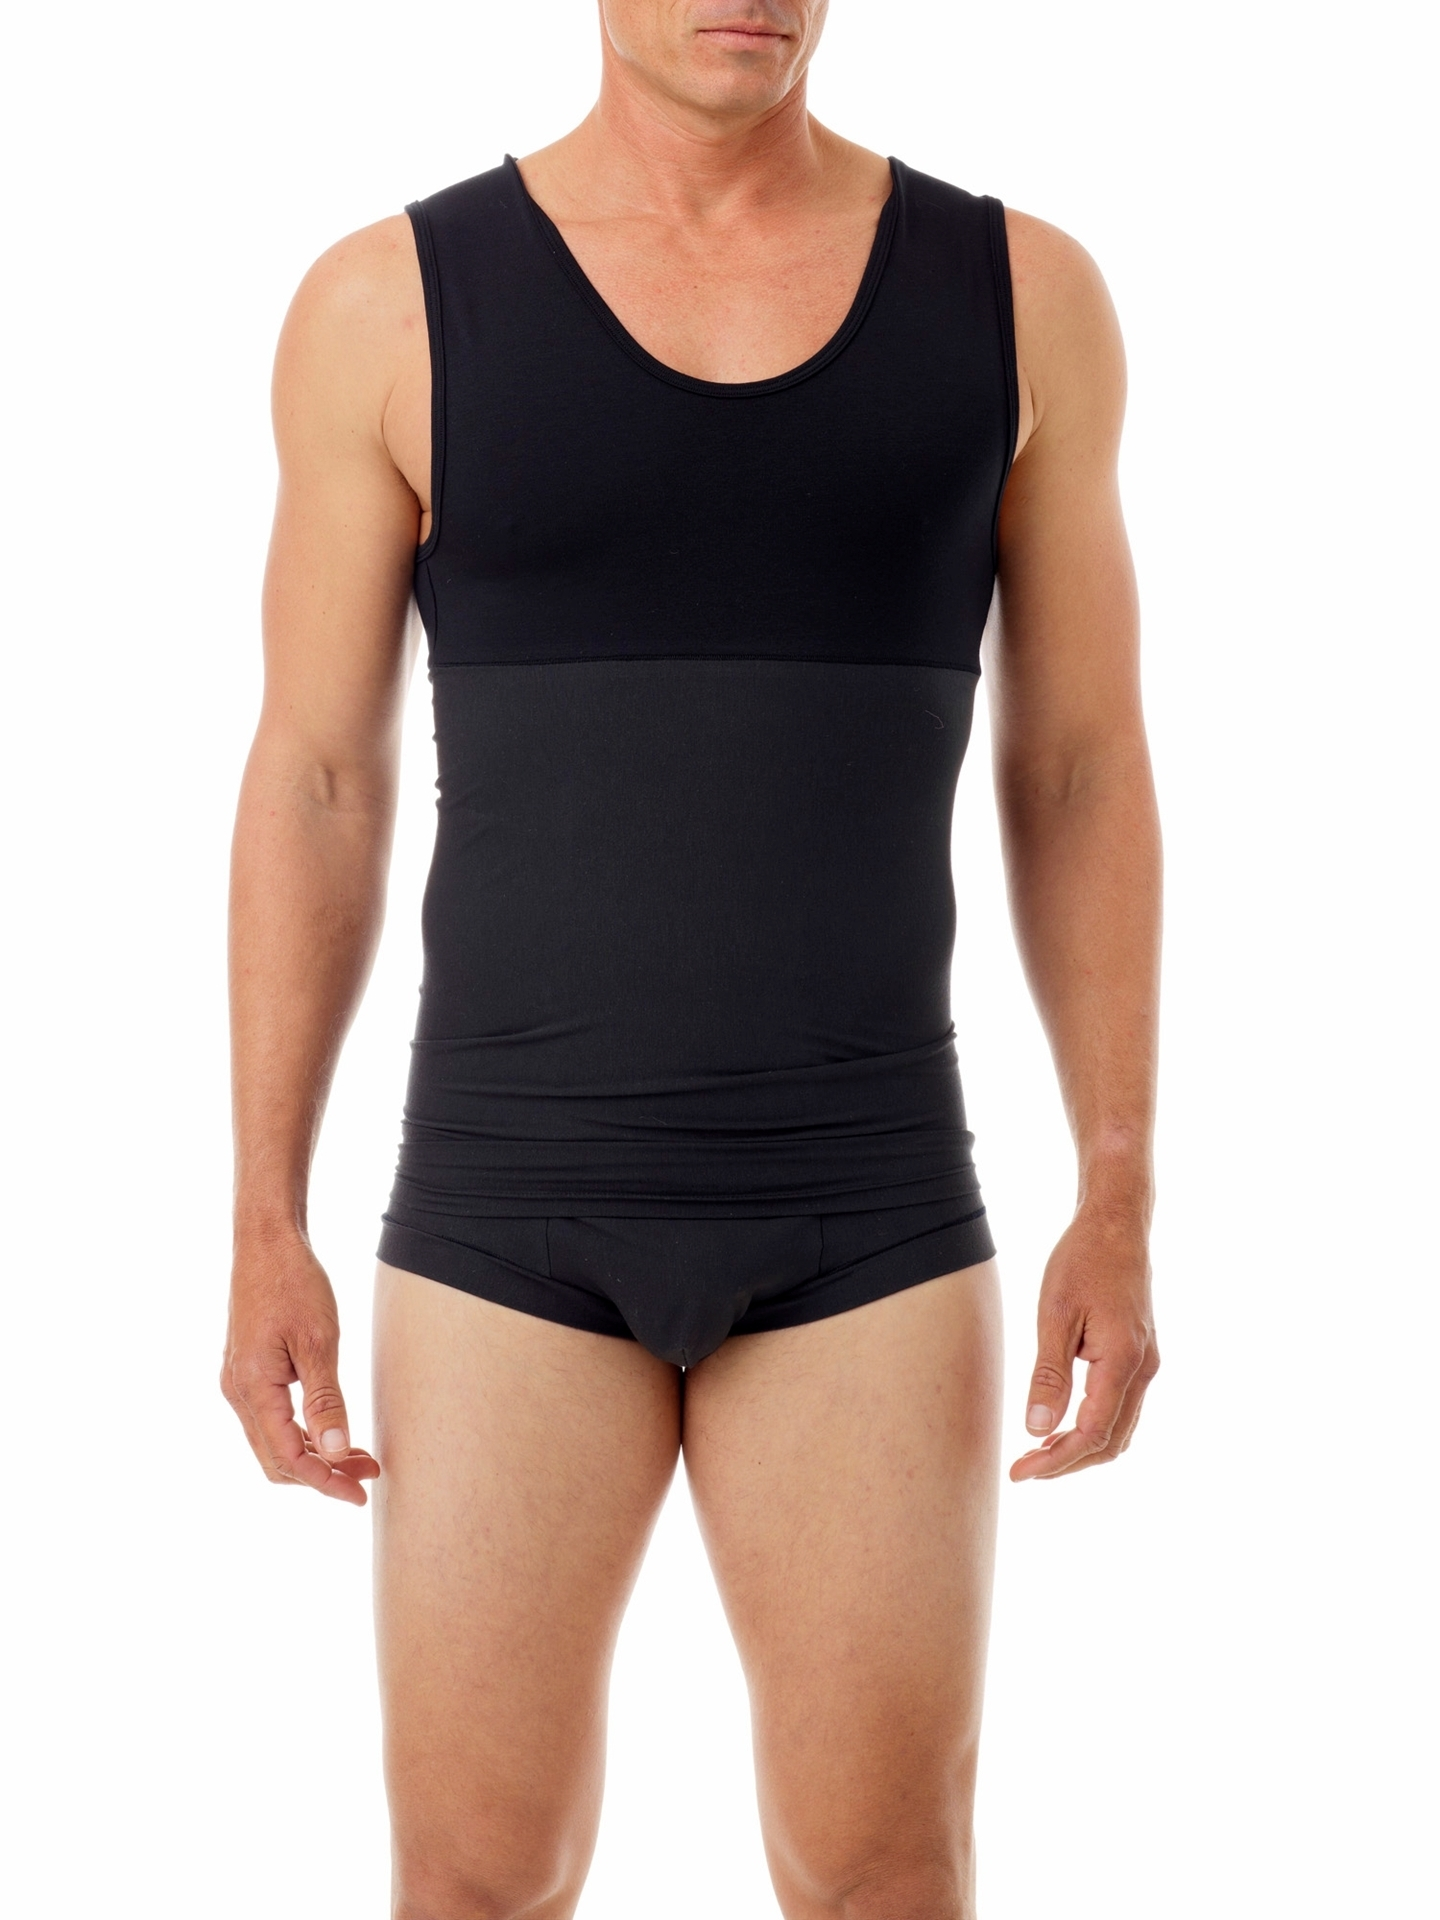 Picture of Manshape Cotton Spandex Support Tank